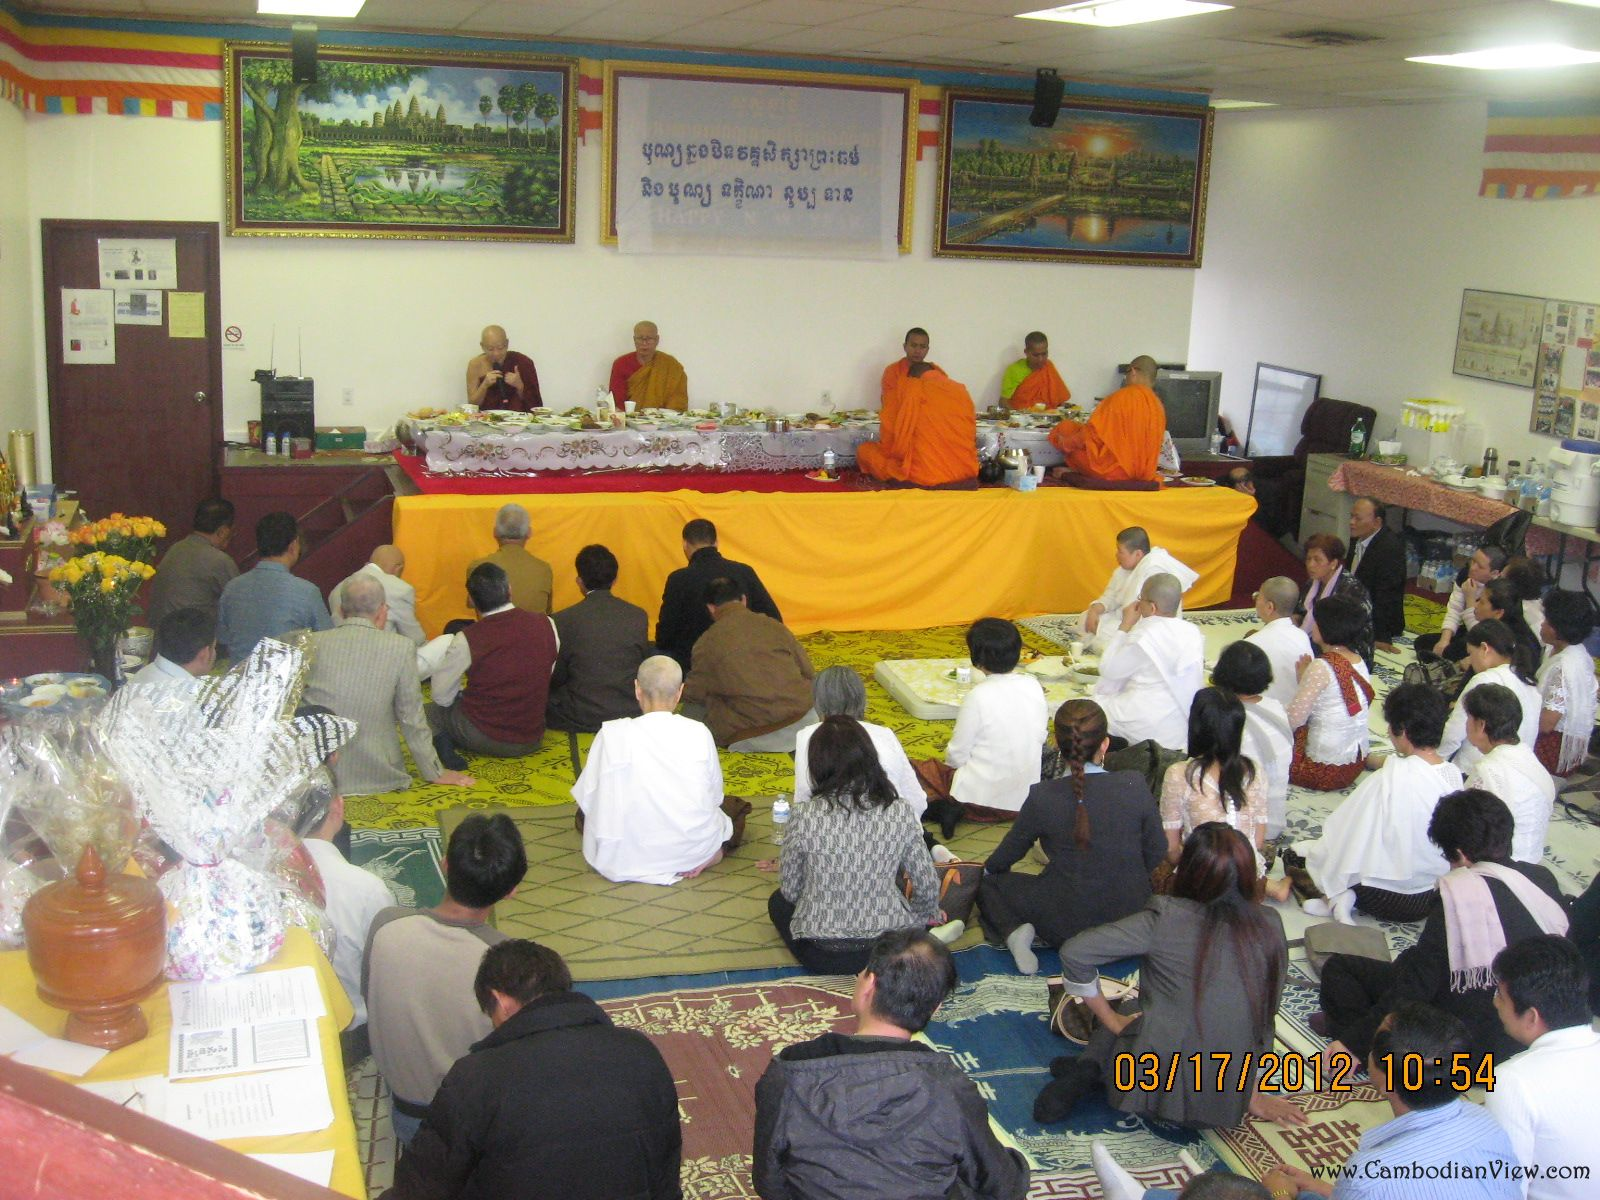 Seminar on Engaged Buddhism